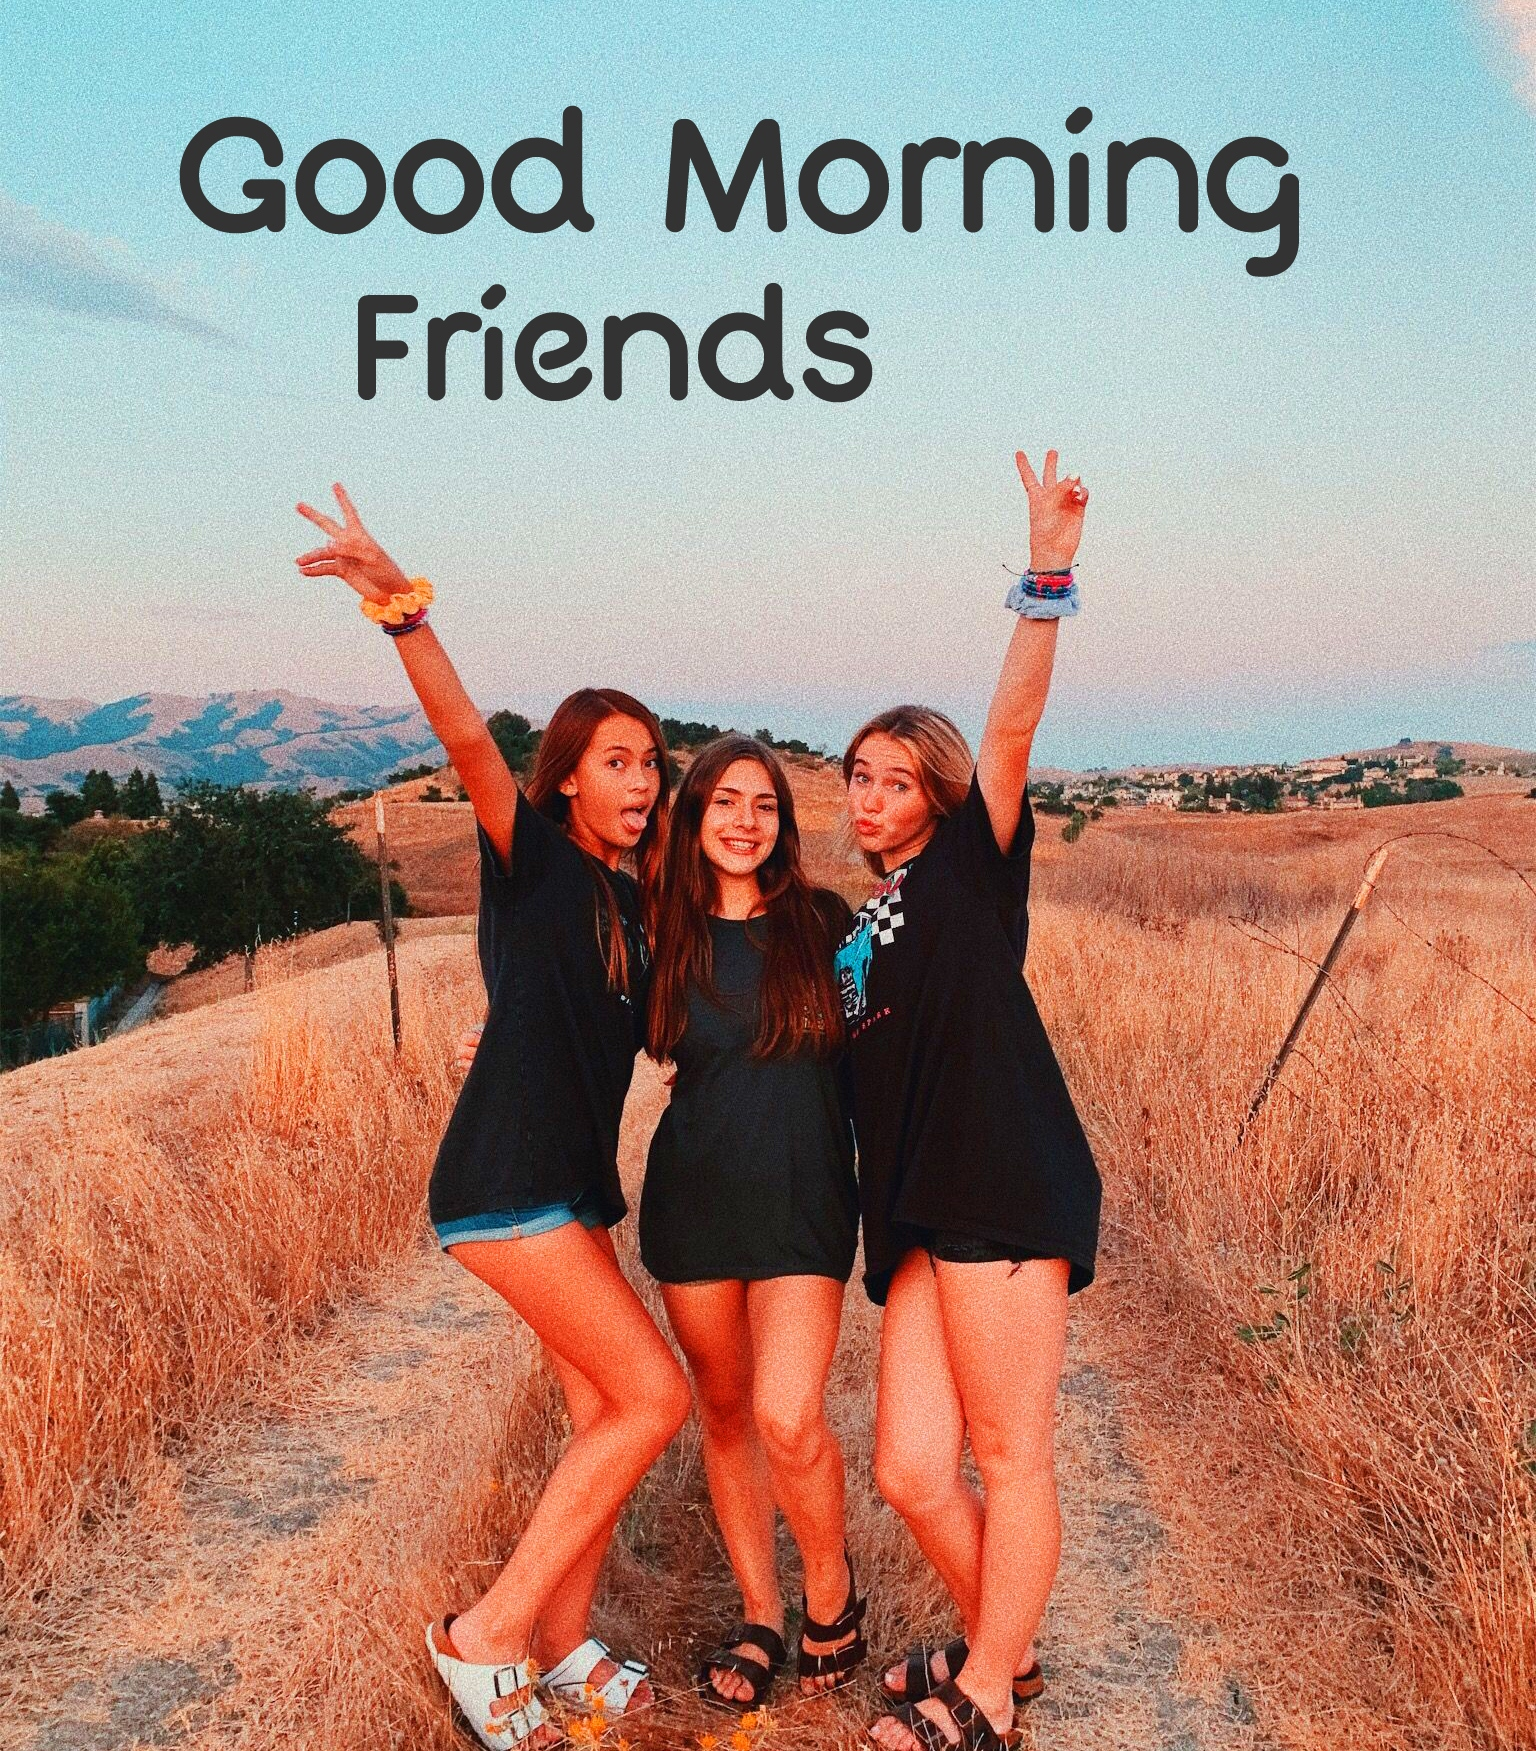 Good Morning Friends Images Wallpaper Photo Download